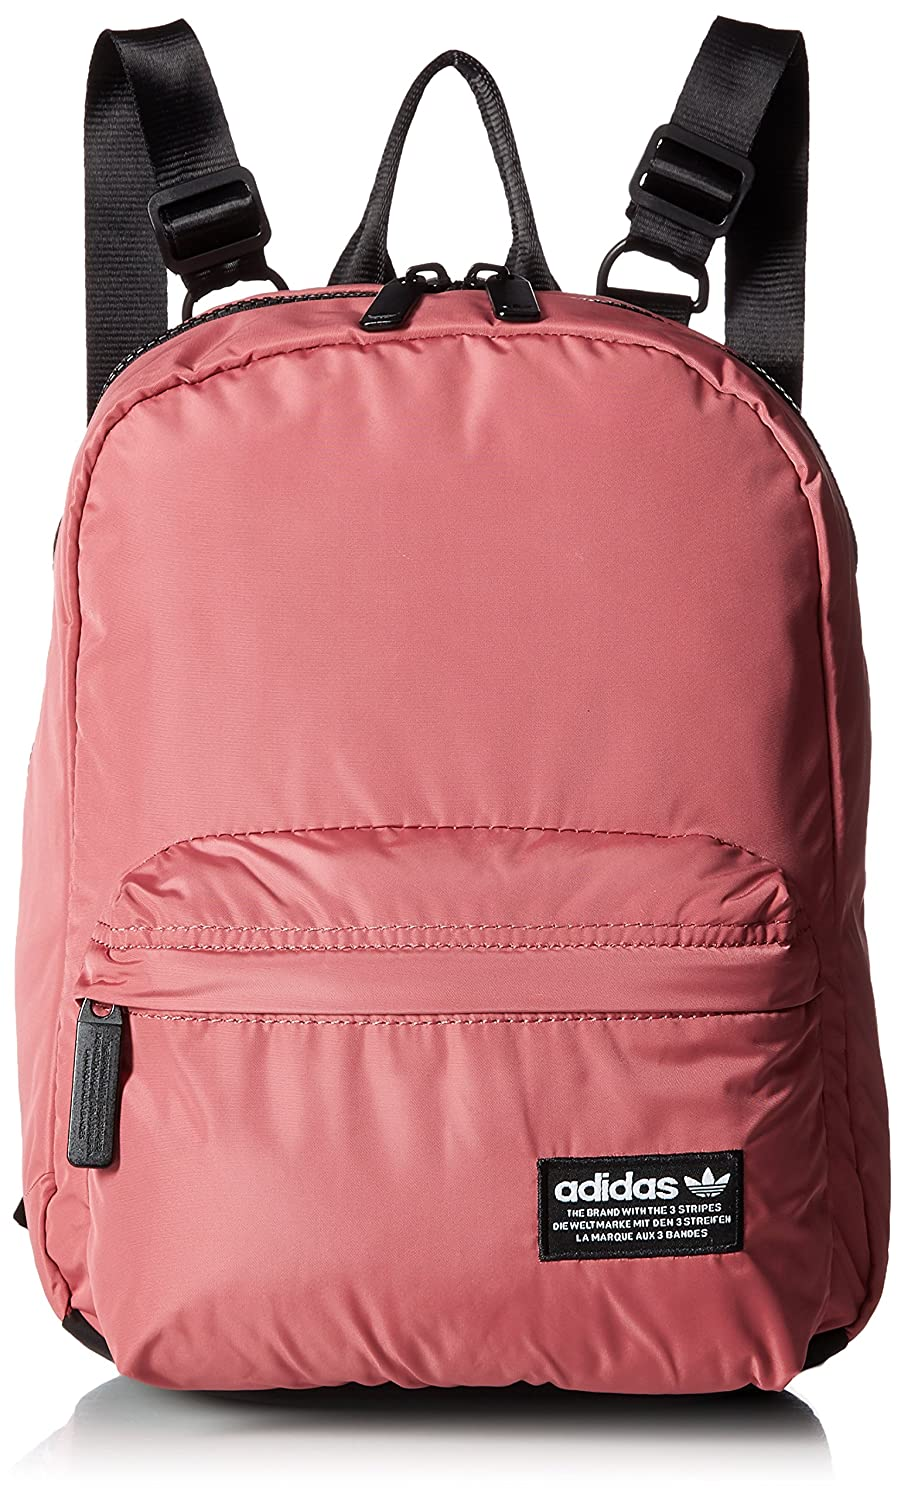 adidas Women s Originals National Compact Backpack fb8d996809c04